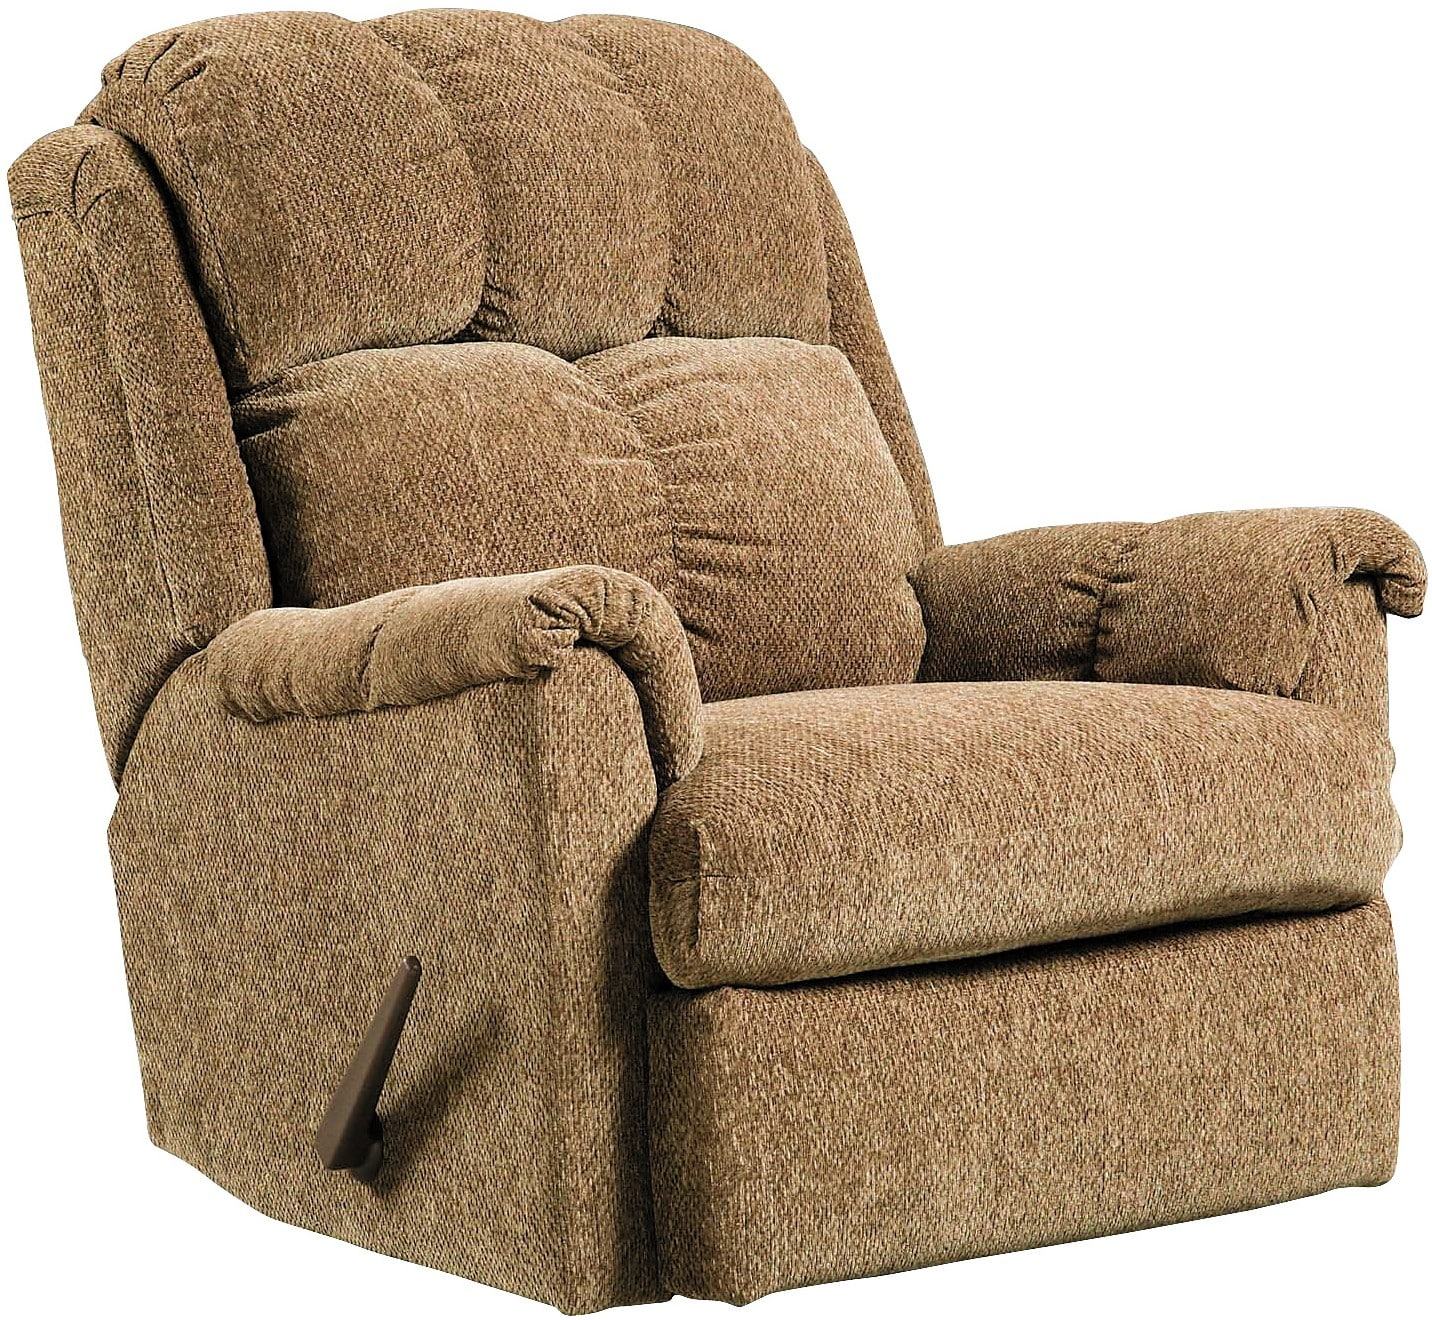 Brown chenille rocker recliner the brick - Fabric rocking chairs living room ...